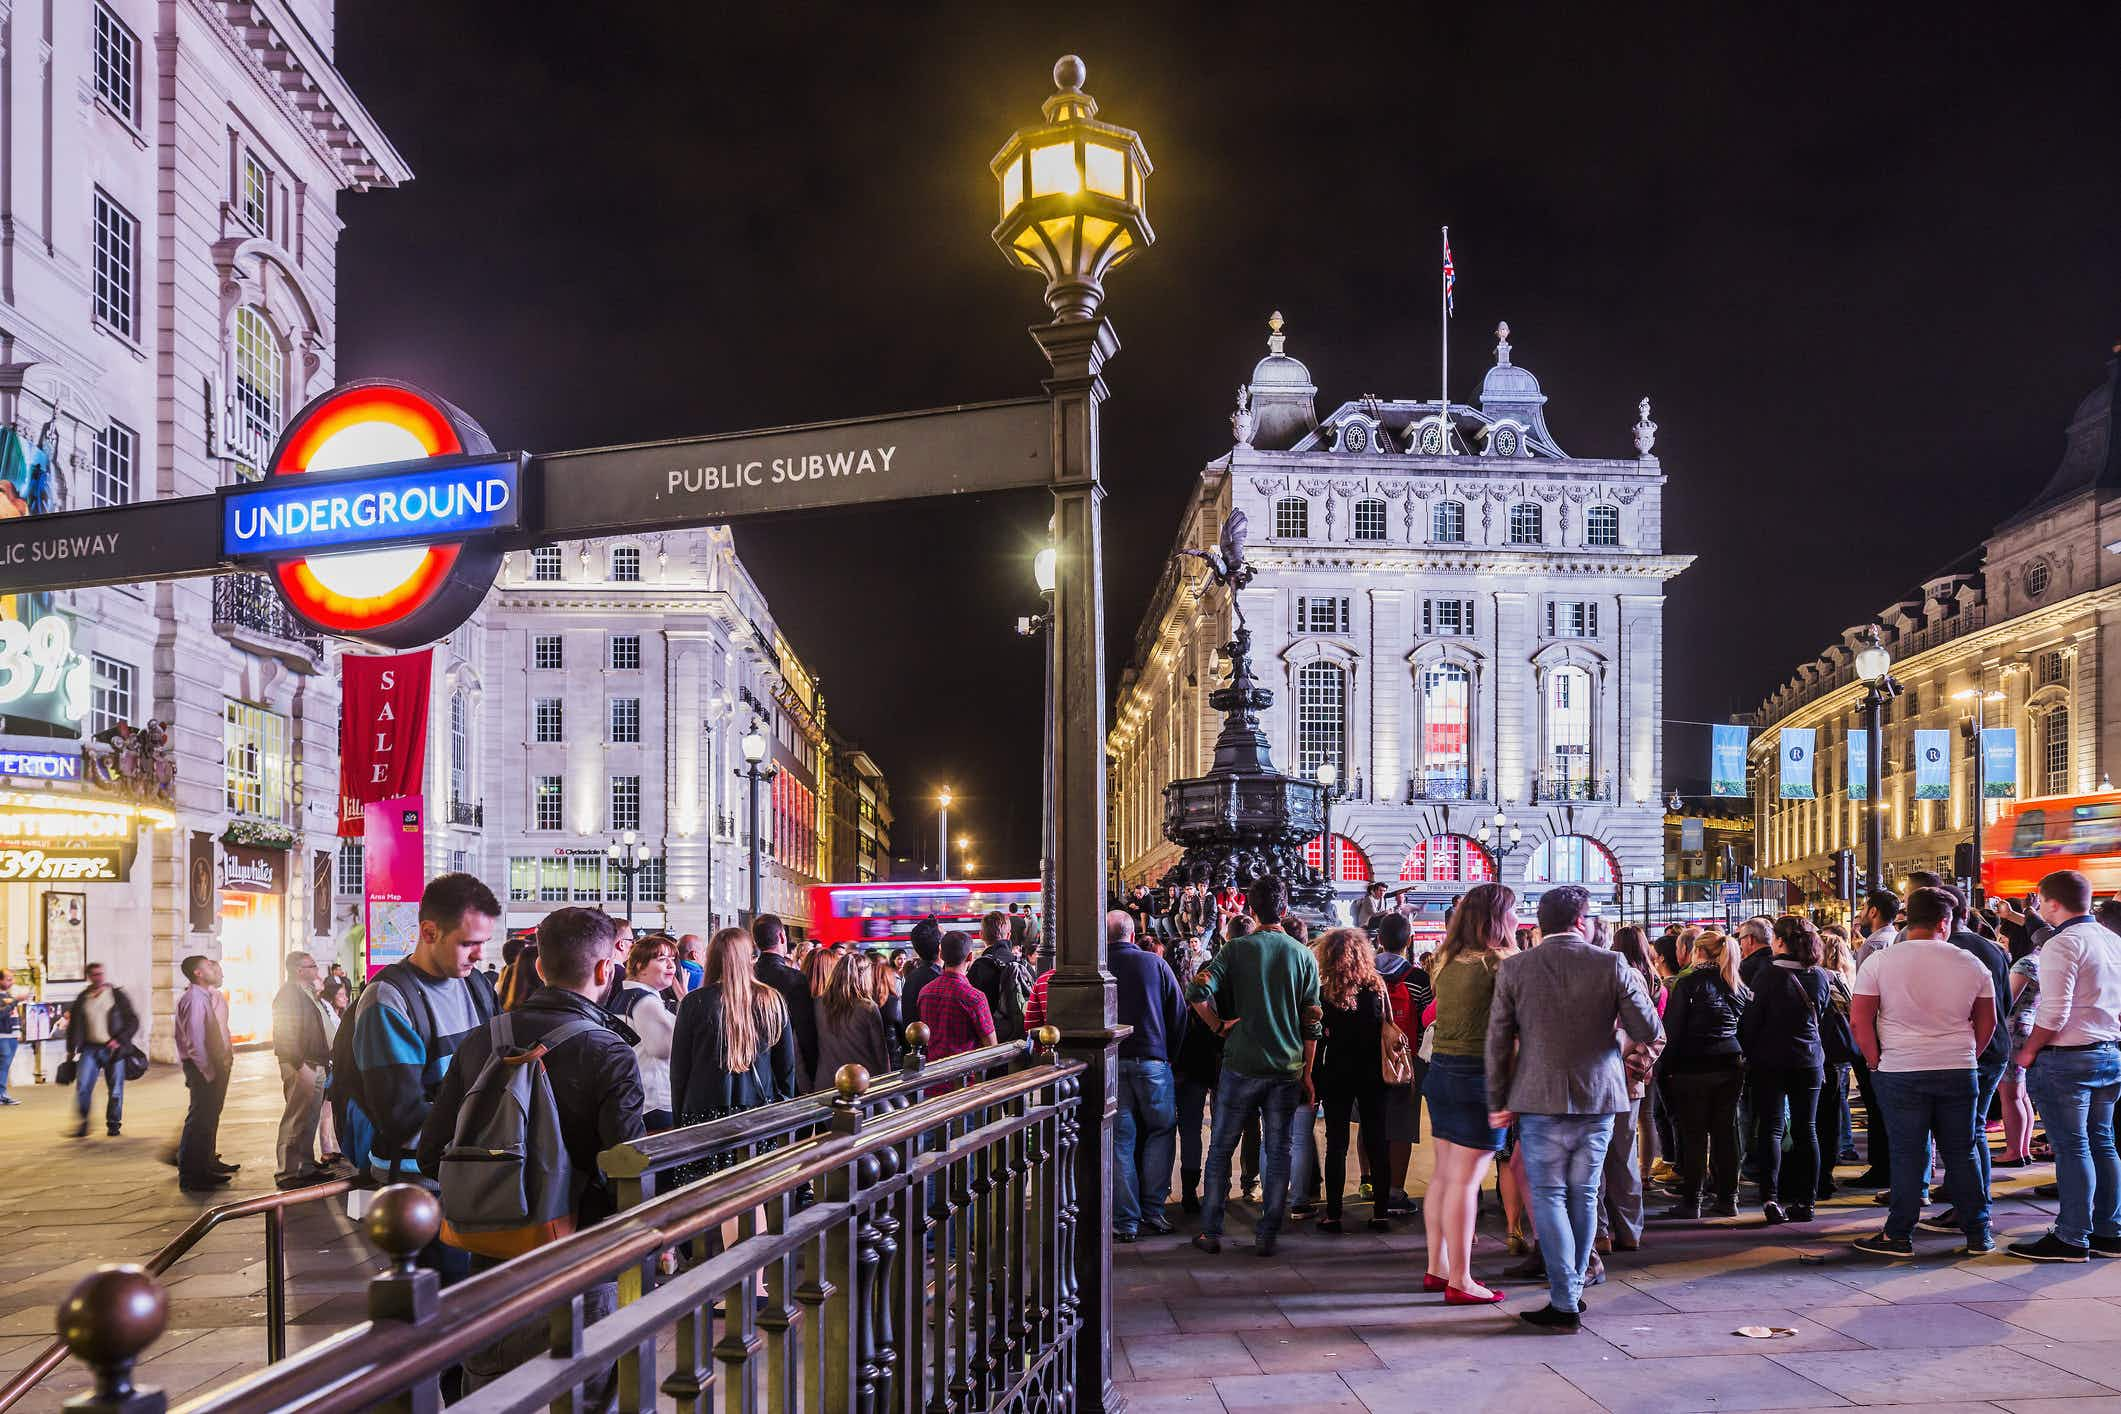 London's Night Tube service has been a smashing success in its first year